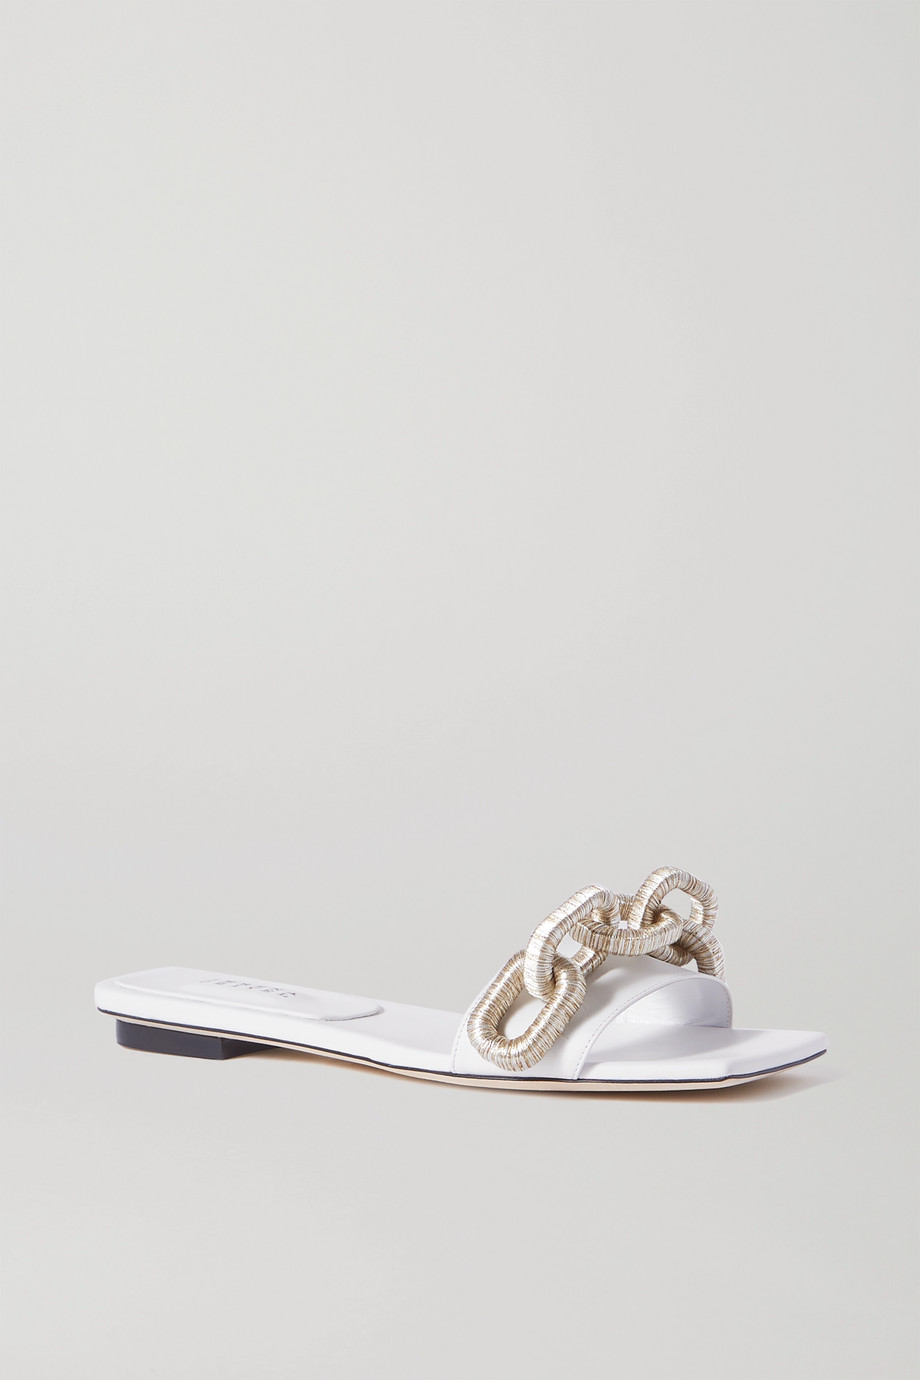 Serena Uziyel Catena embellished leather slides